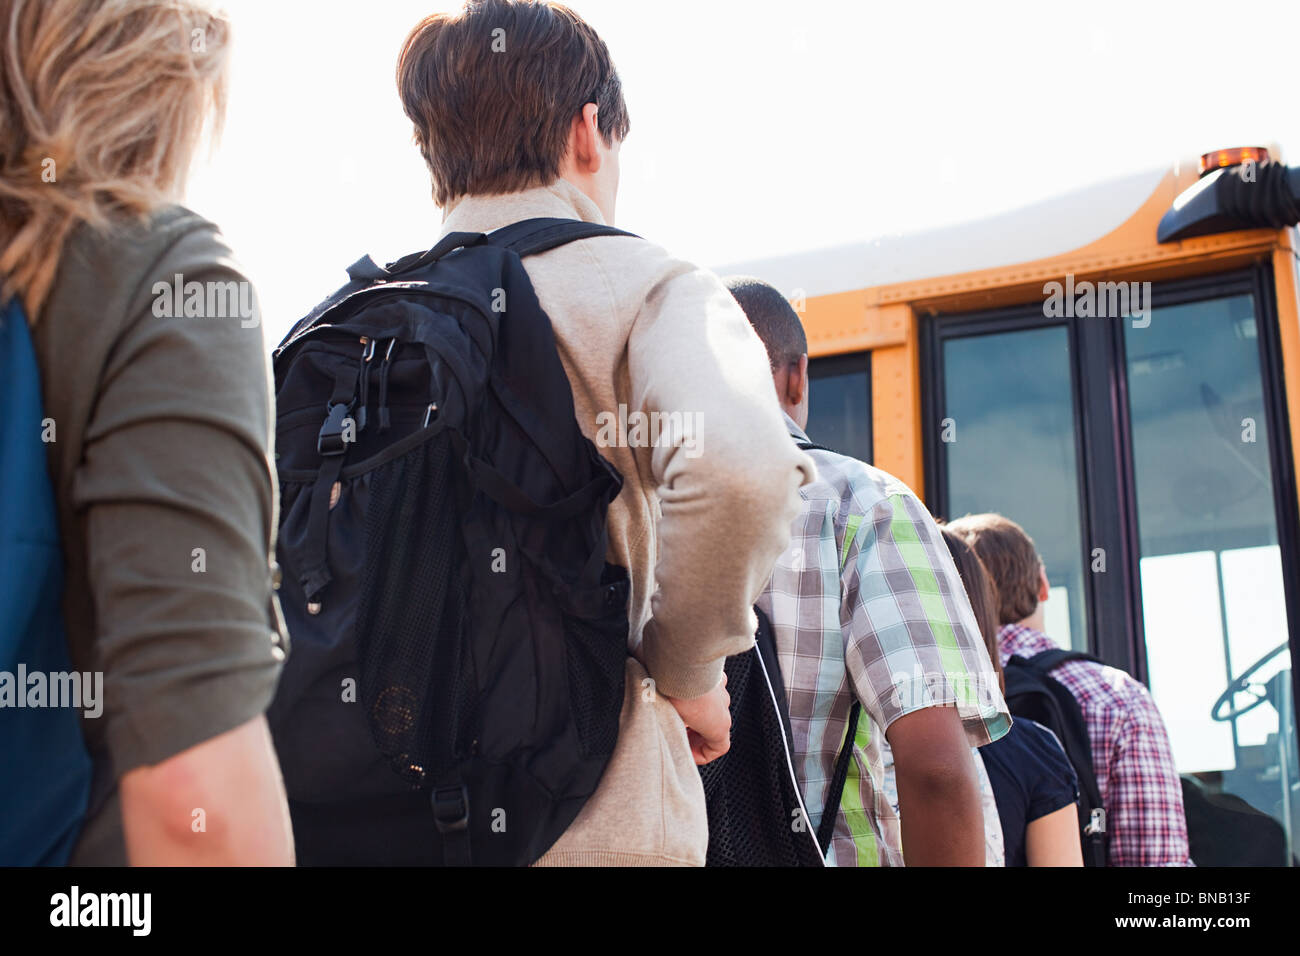 High school students queuing for school bus - Stock Image